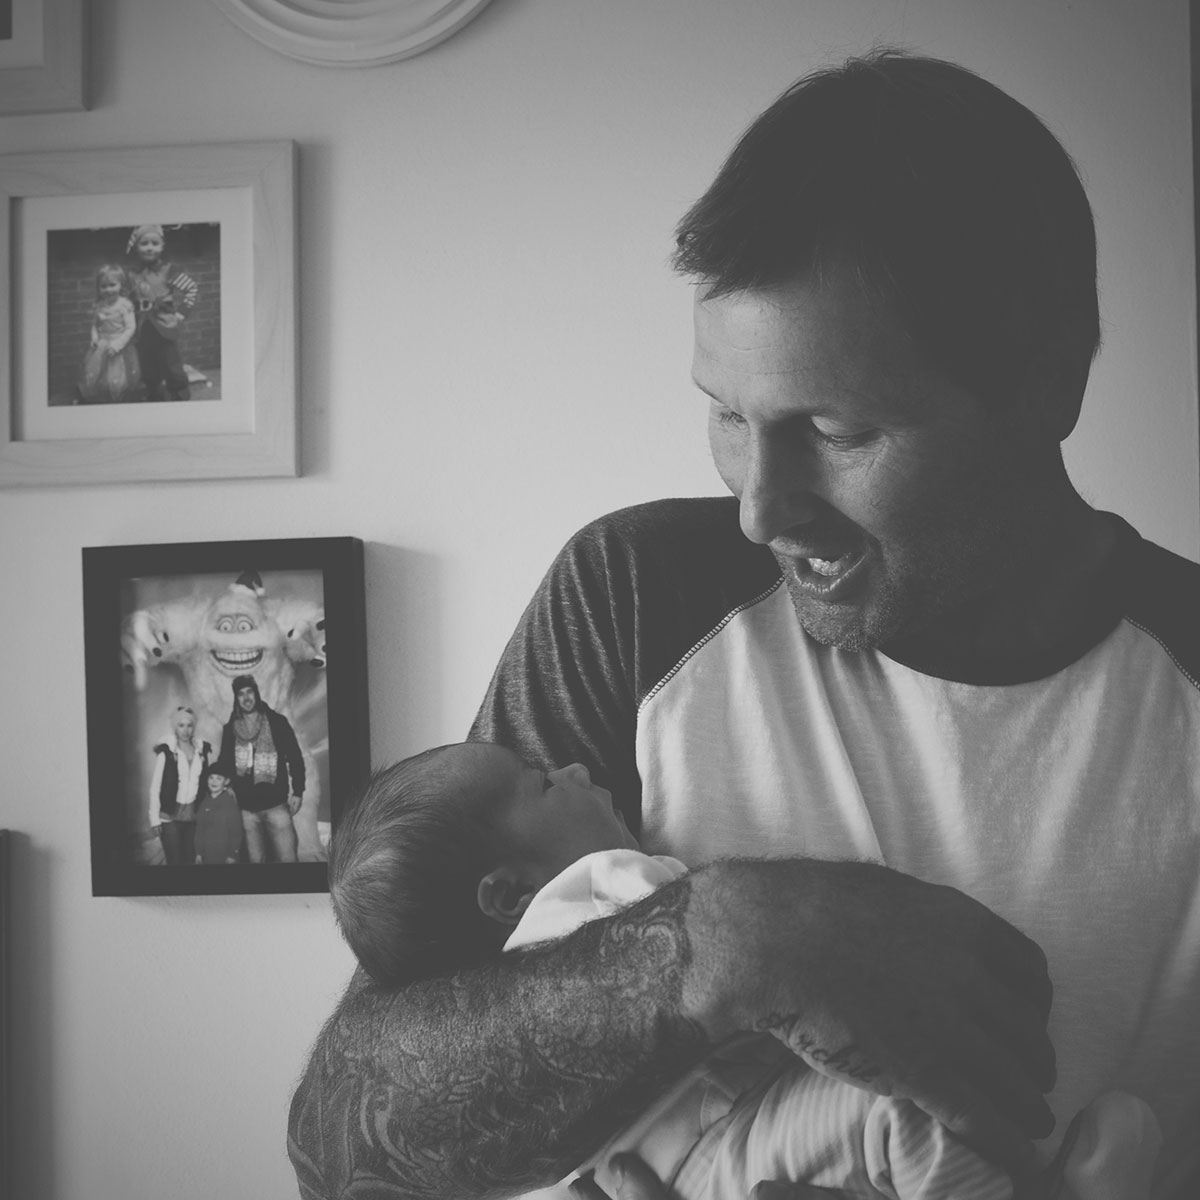 Our month in insta-snaps; August 2016 - Grandad holding new baby boy grandson for the first time